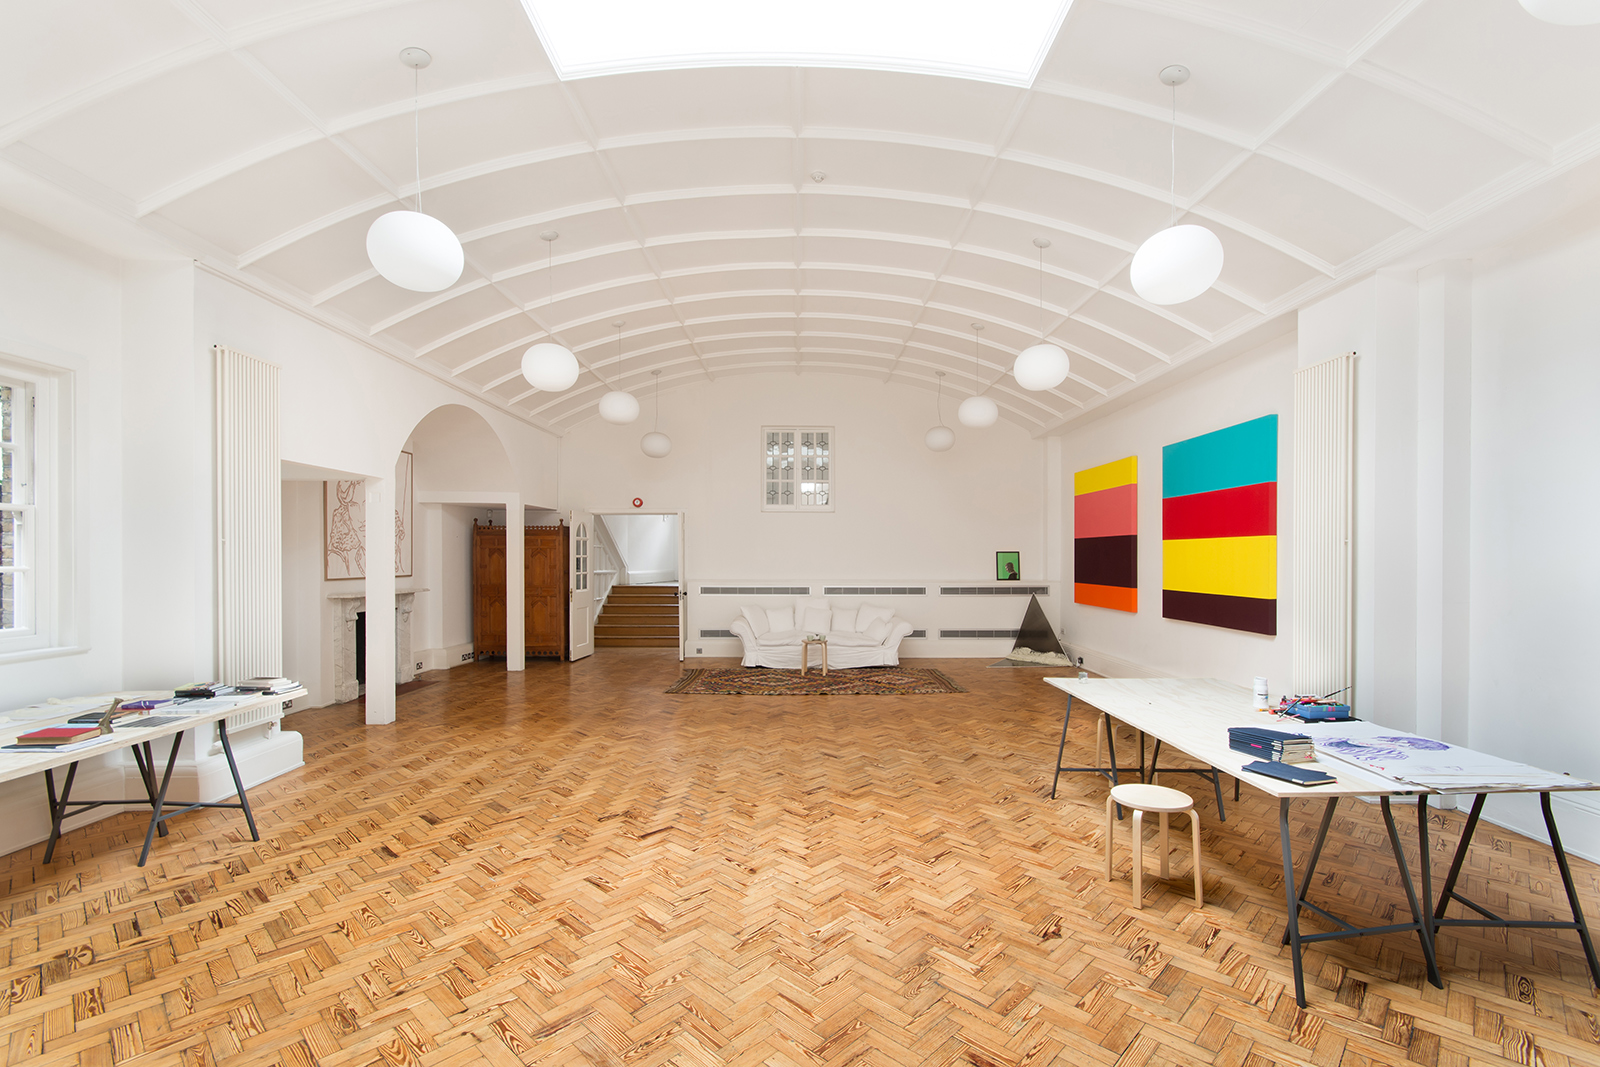 10 of the most unusual london homes for sale right now rh thespaces com interior design items for sale interior design for sales office